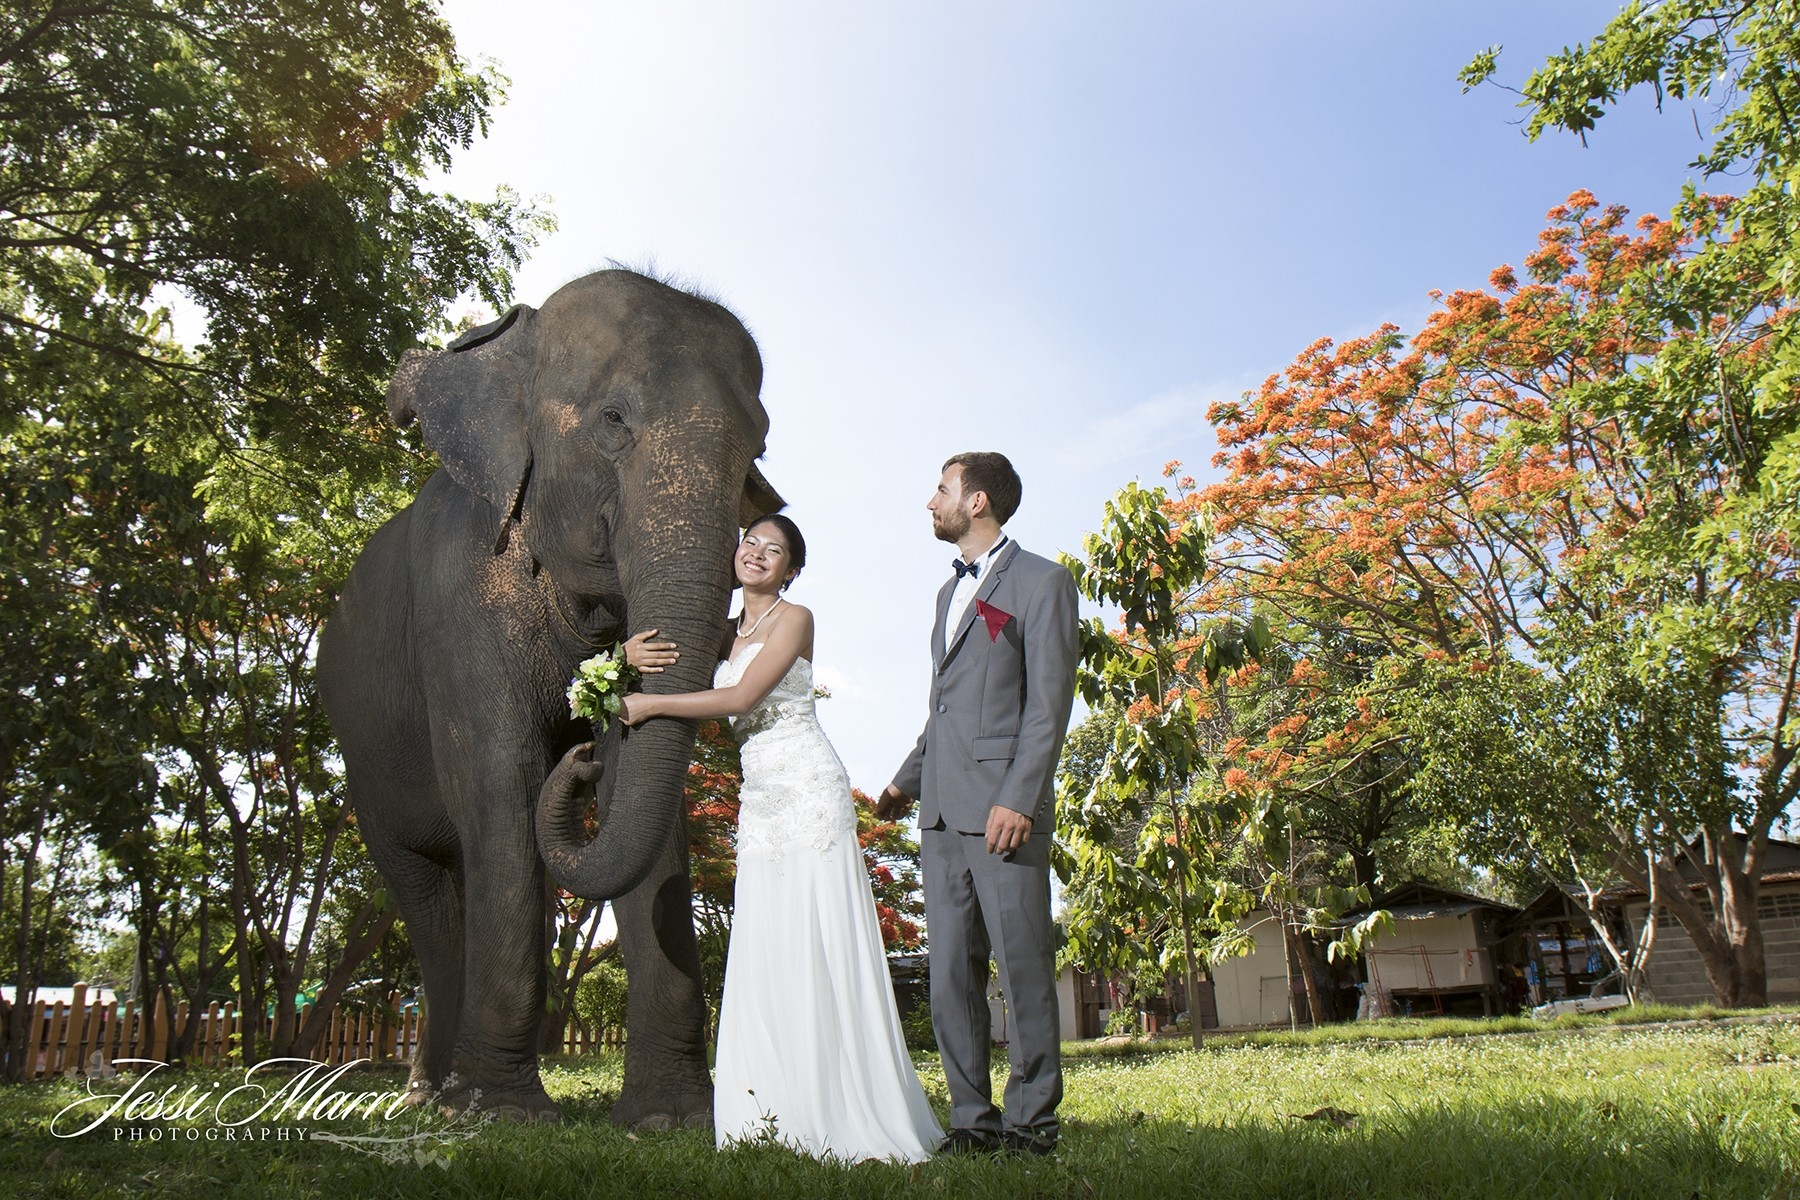 Thailand Destination Wedding Photography